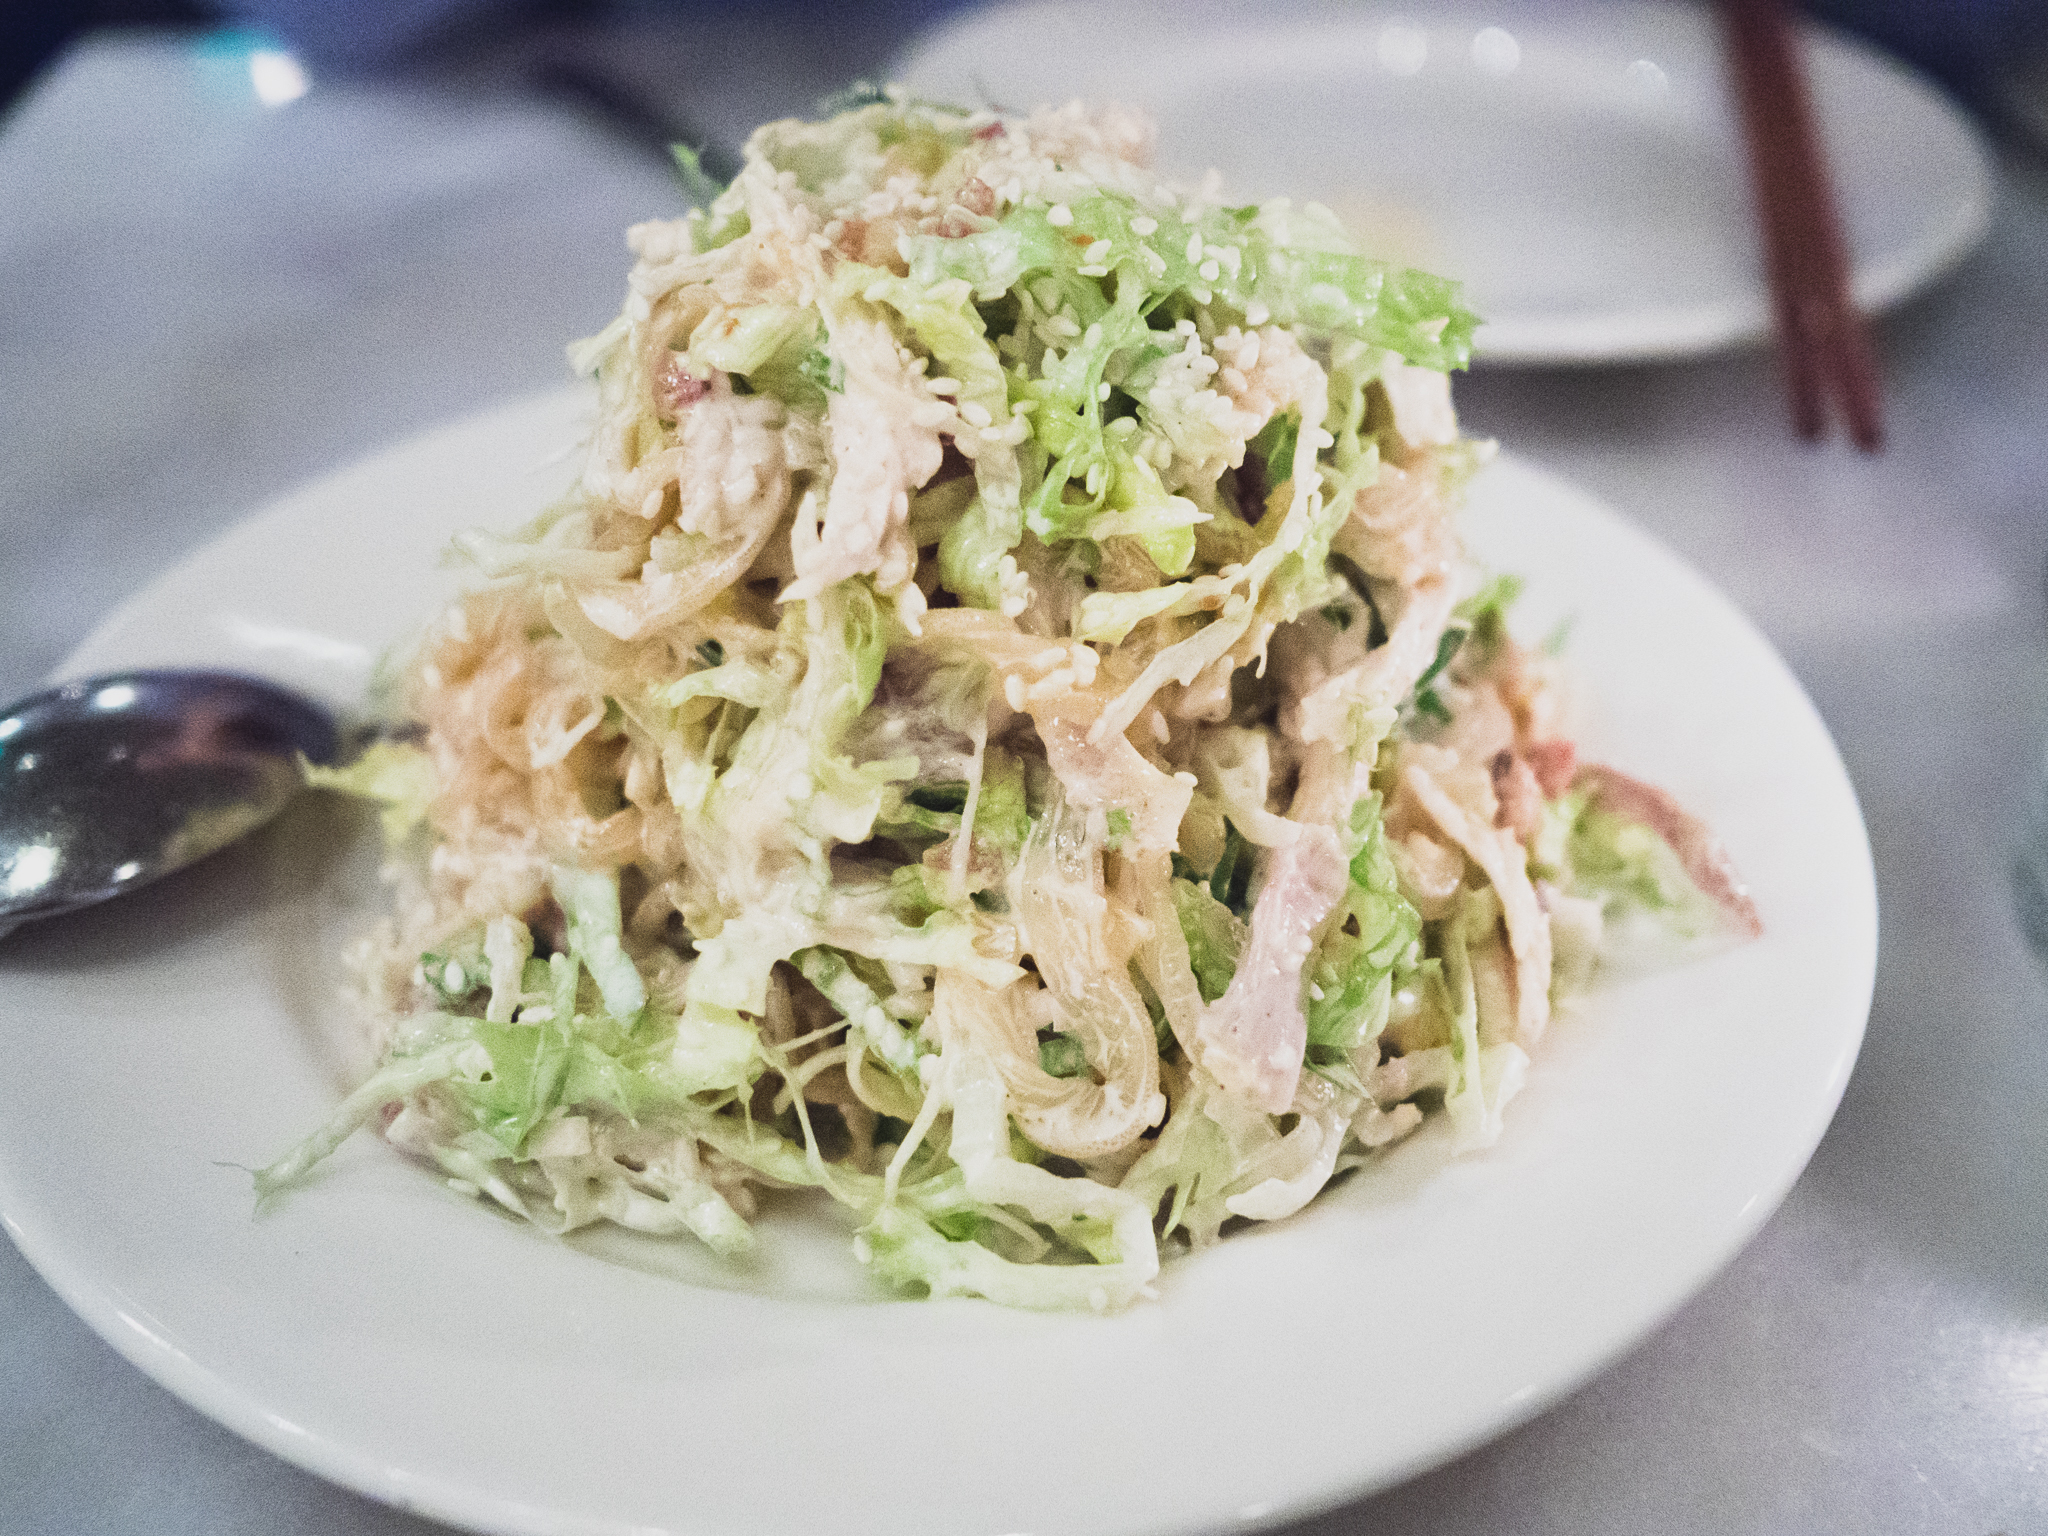 jellyfish salad  with shredded chicken, crispy rice, green leaf, sesame bacon dressing.